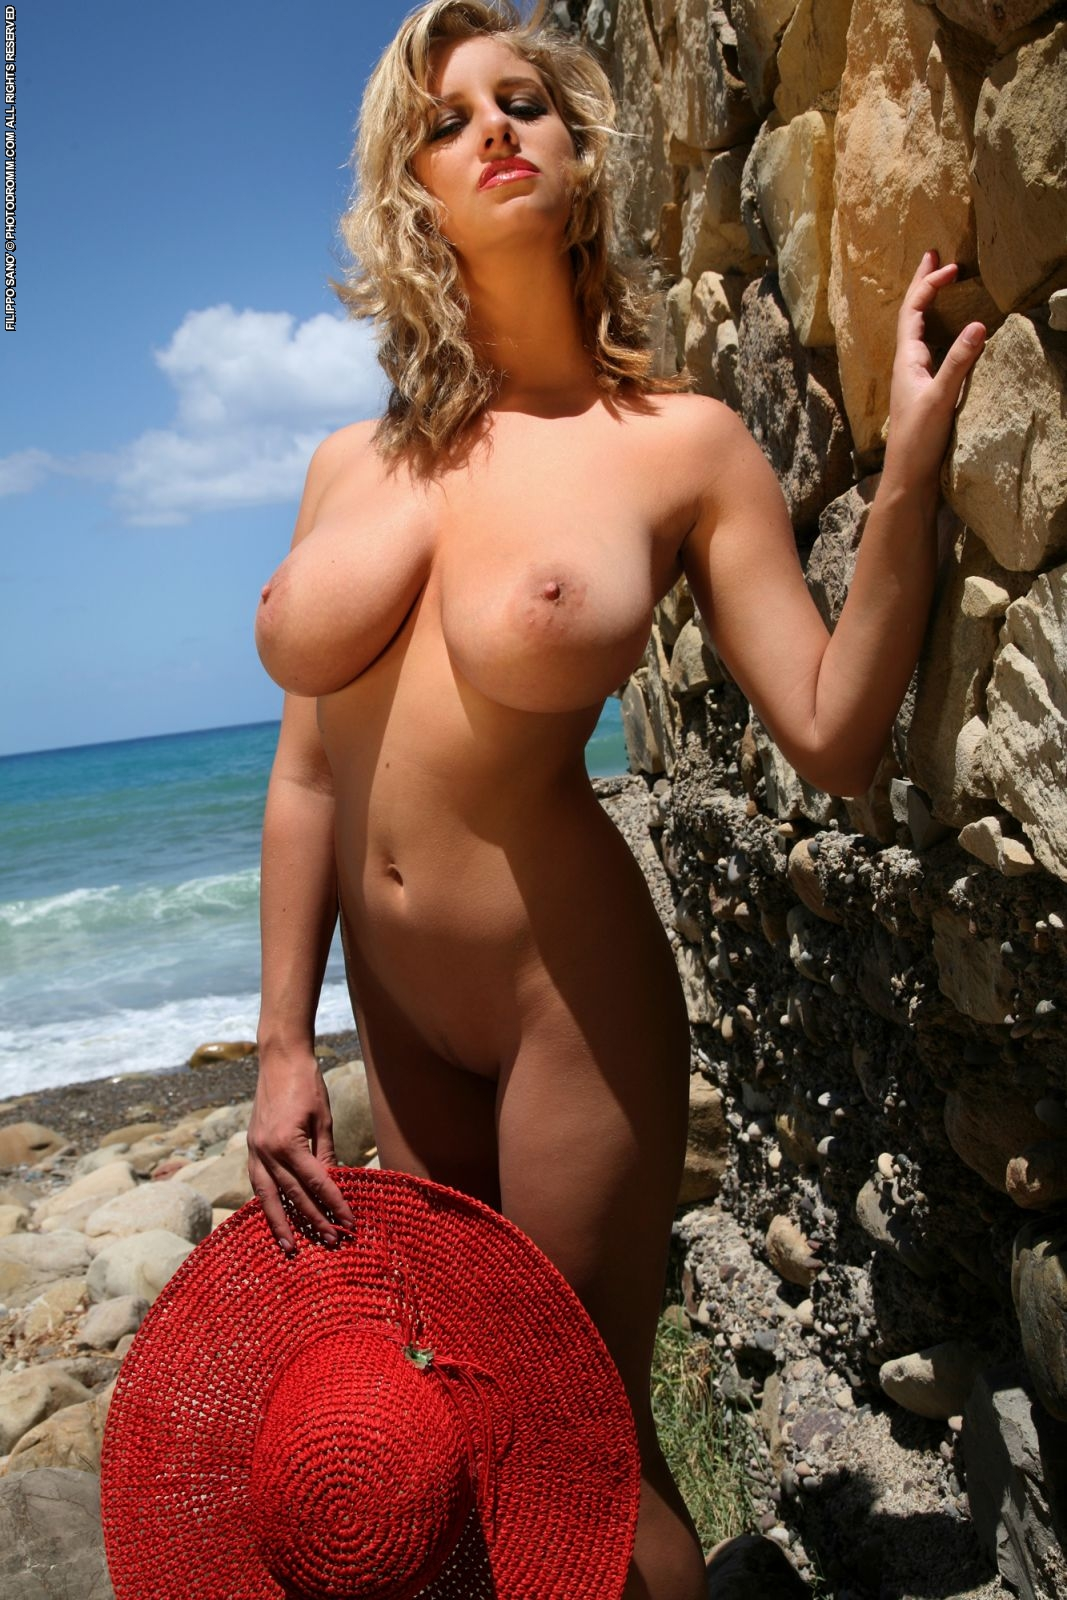 Nude Boobs On The Beach